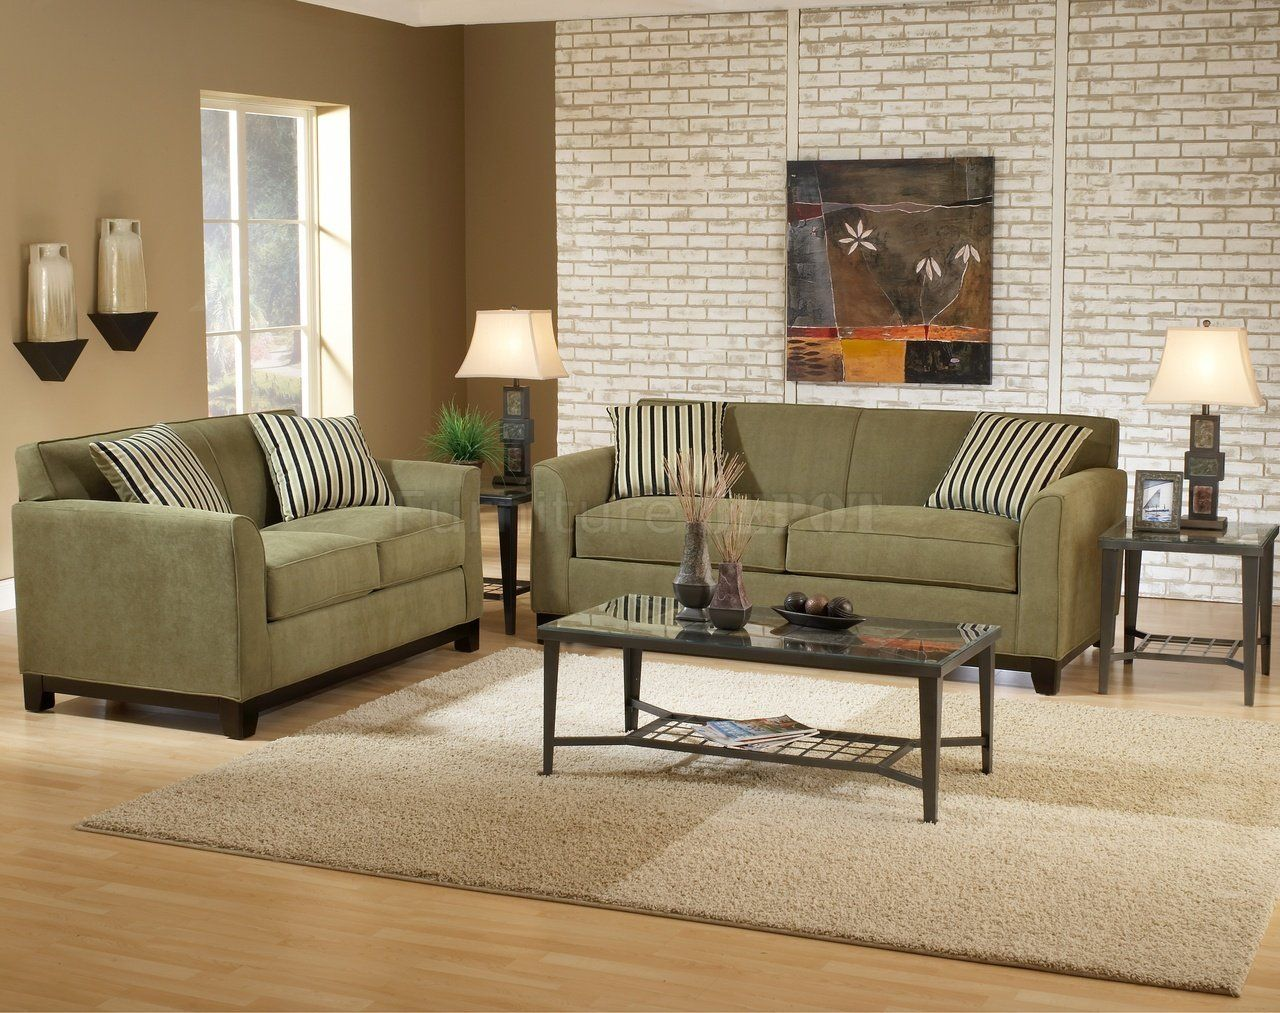 Ideal Color For Living Room Colors That Go With Olive Green What Color Paint For Olive Green